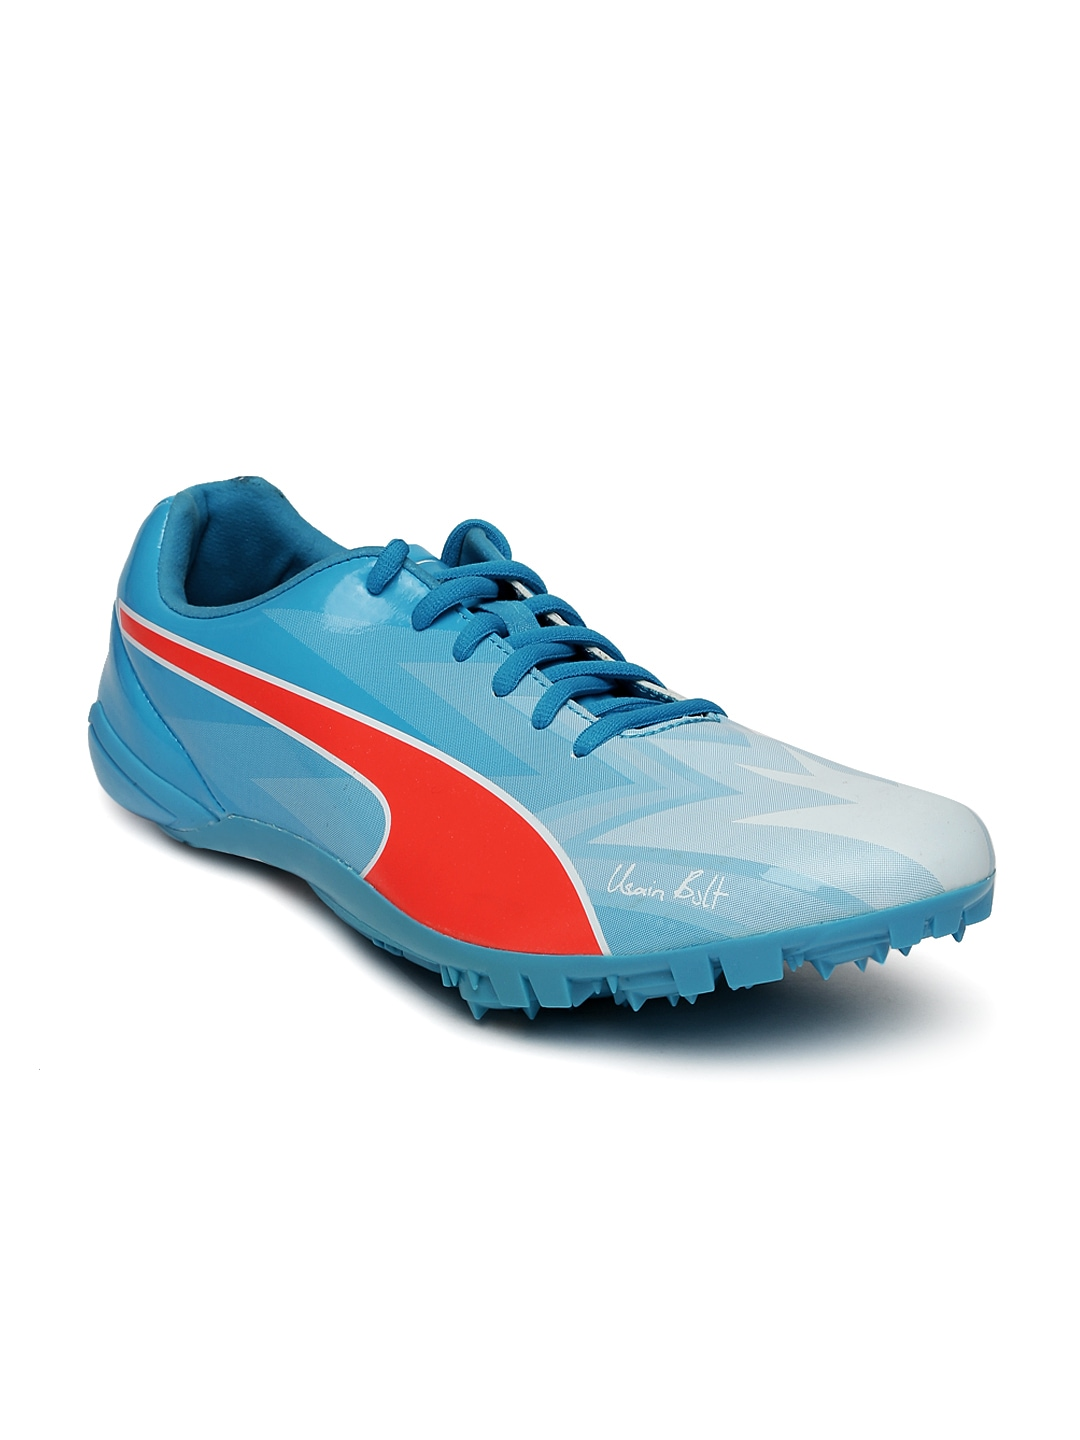 Puma Bolts Sports Shoes - Buy Puma Bolts Sports Shoes online in India 9d1788189